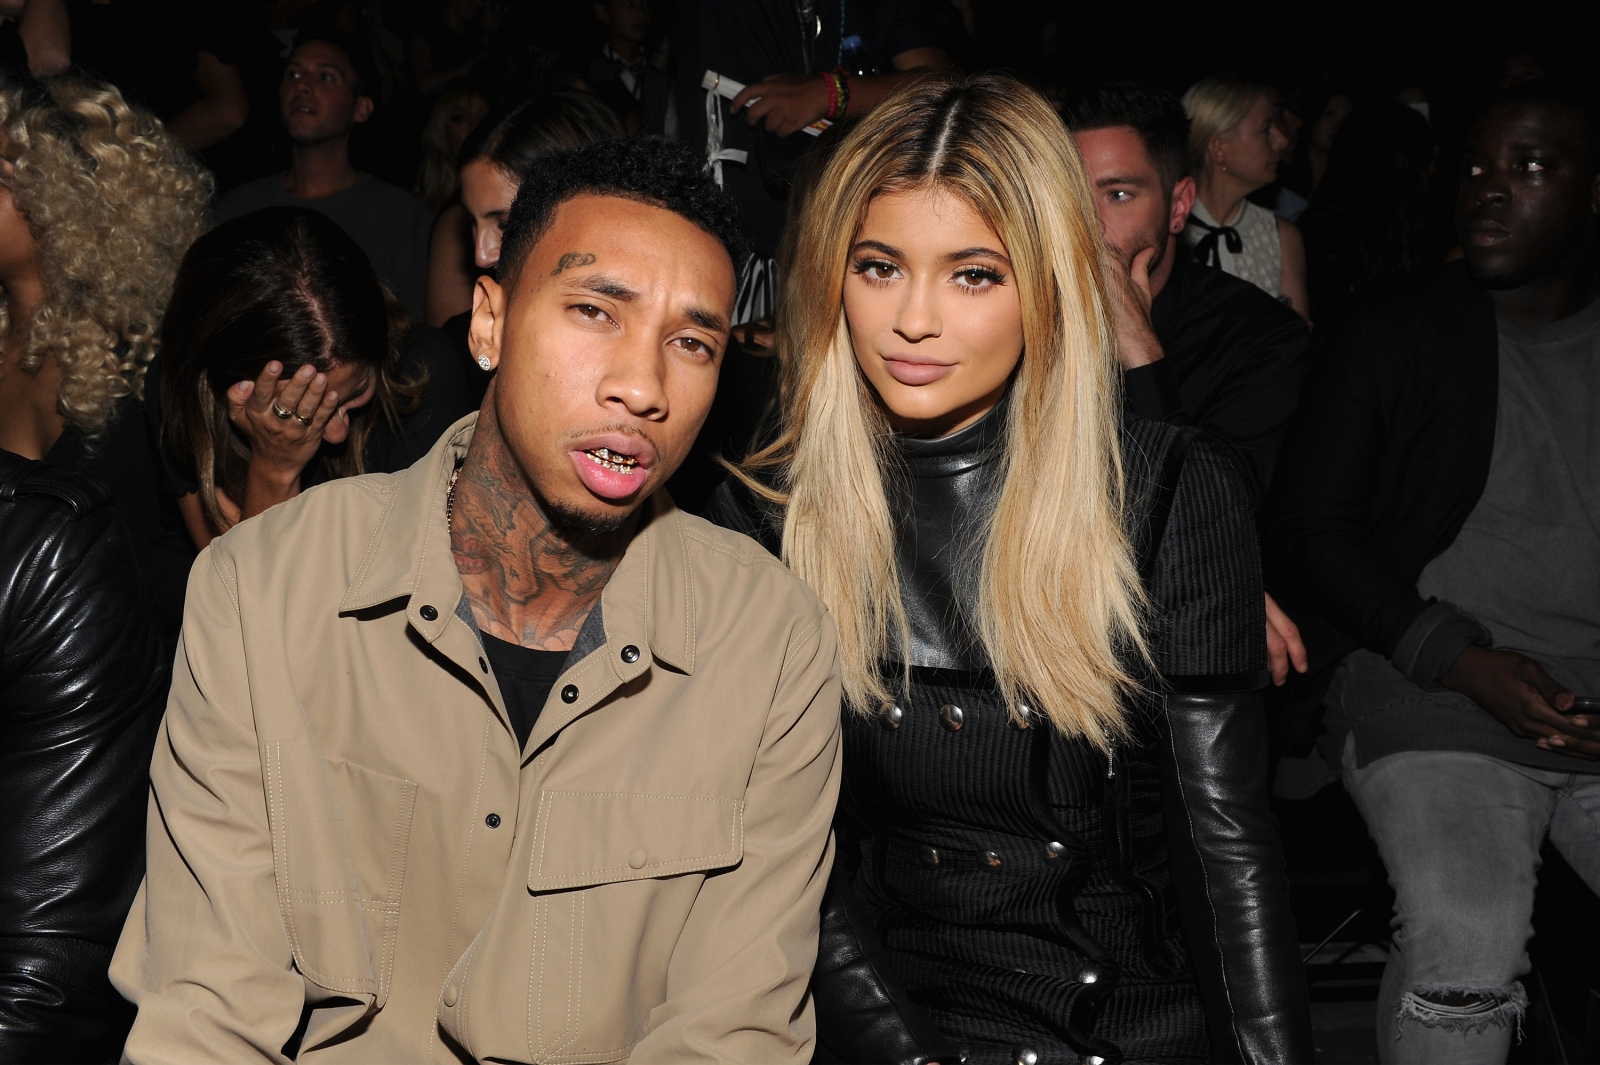 Tyga and Kylie Jenner attend the Alexander Wang Spring 2016 fashion show